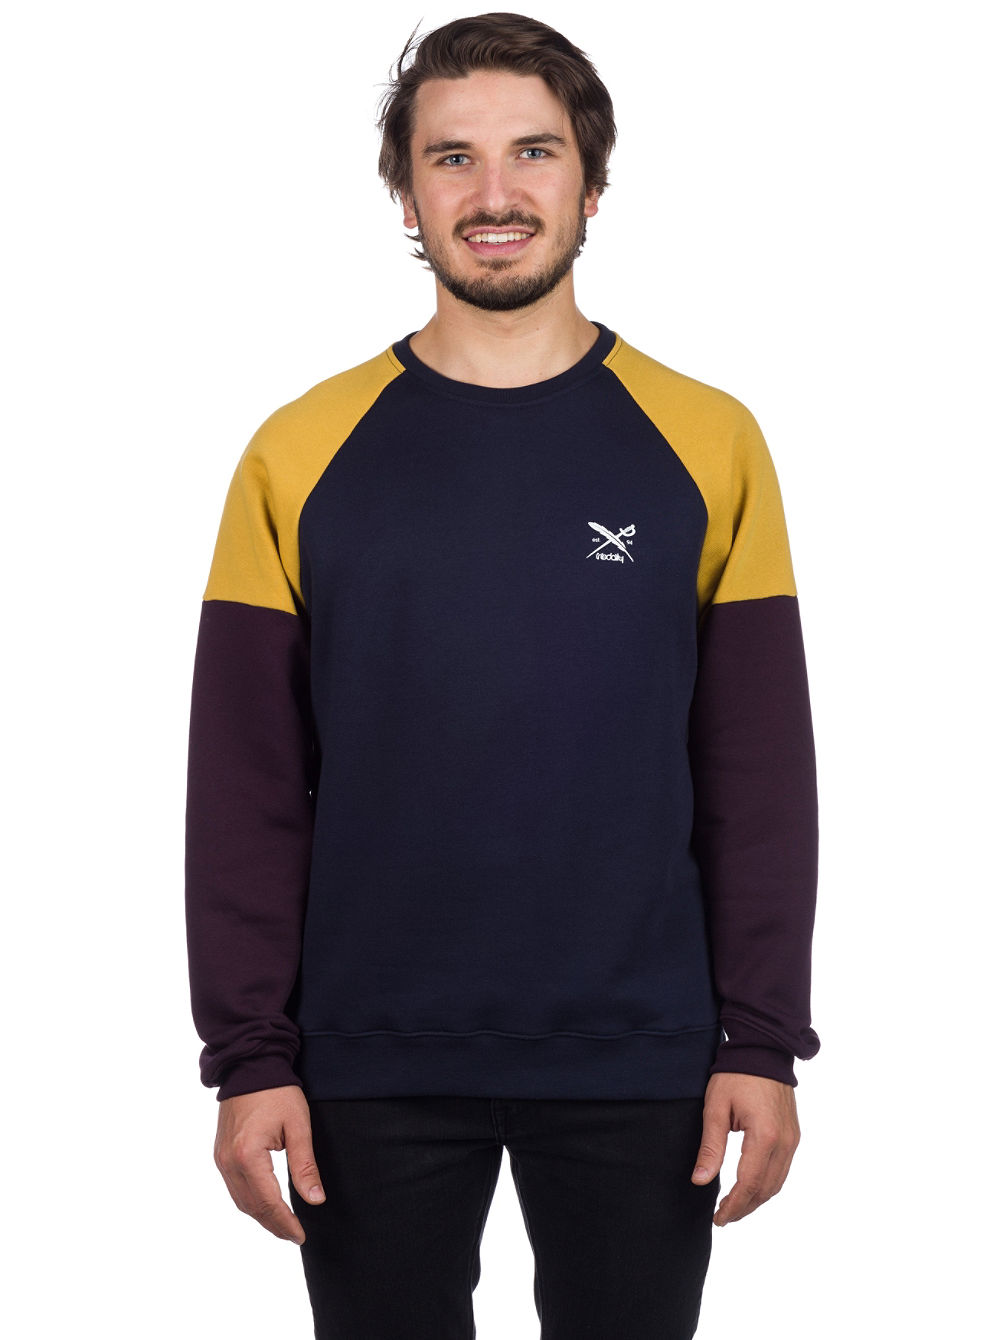 Chump Crew Sweater